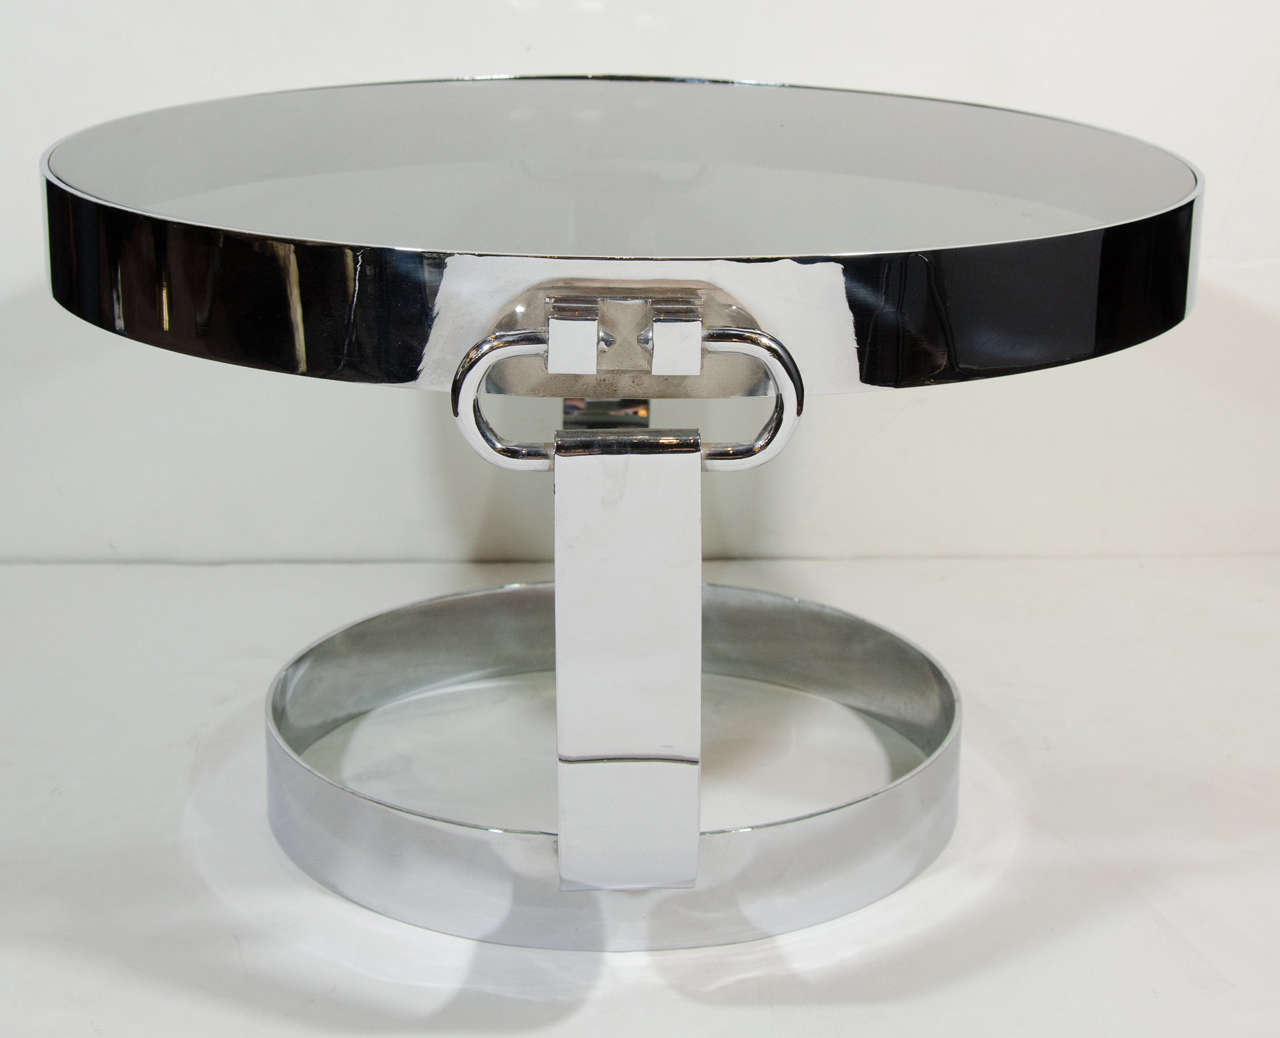 Italian Mid Century Modern Gucci Style Cocktail Table Or Side Table For Sale